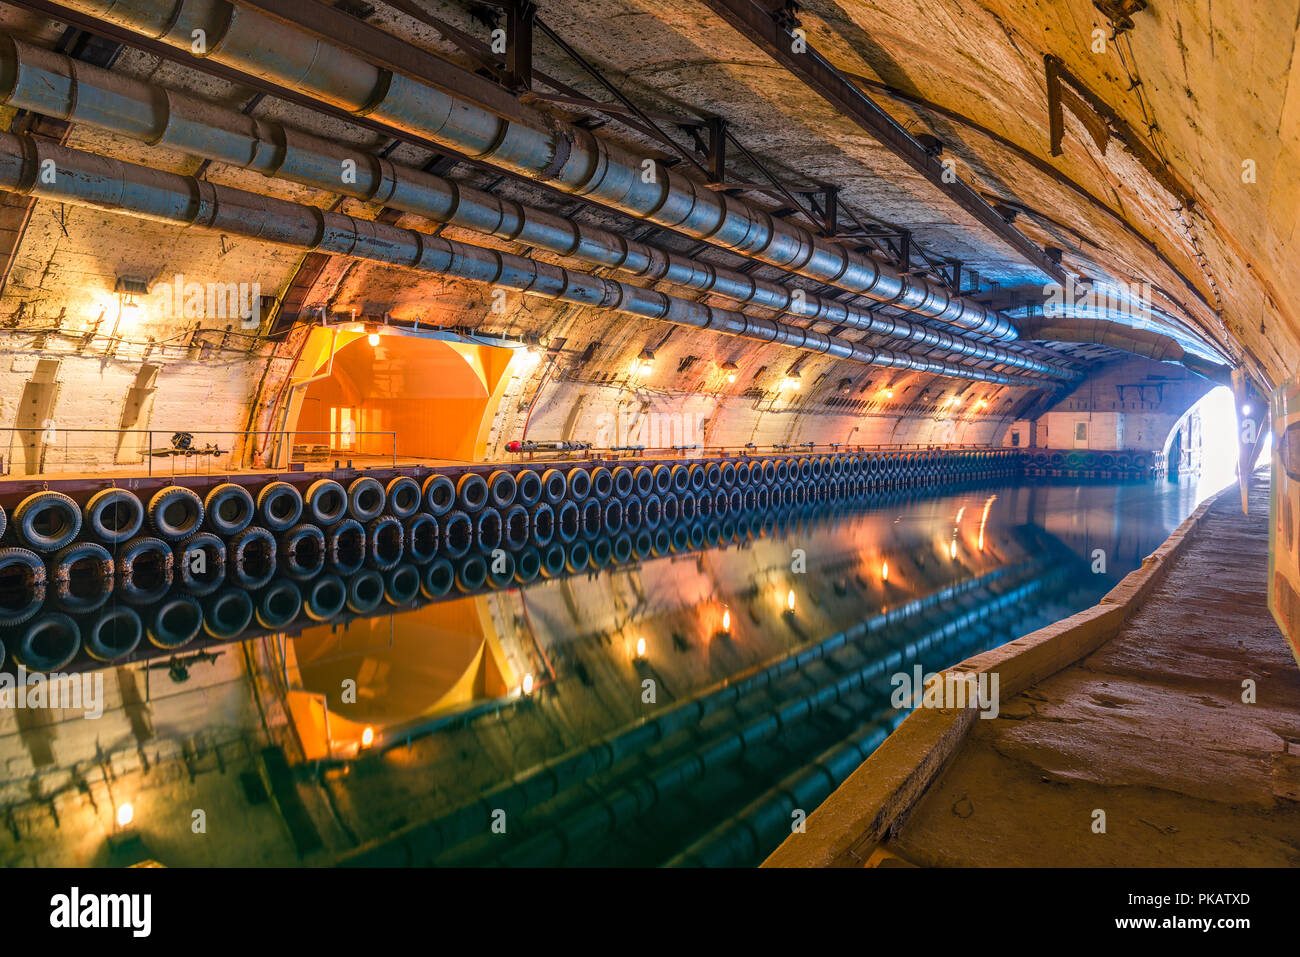 Underwater Road Tunnel Stock Photos & Underwater Road Tunnel